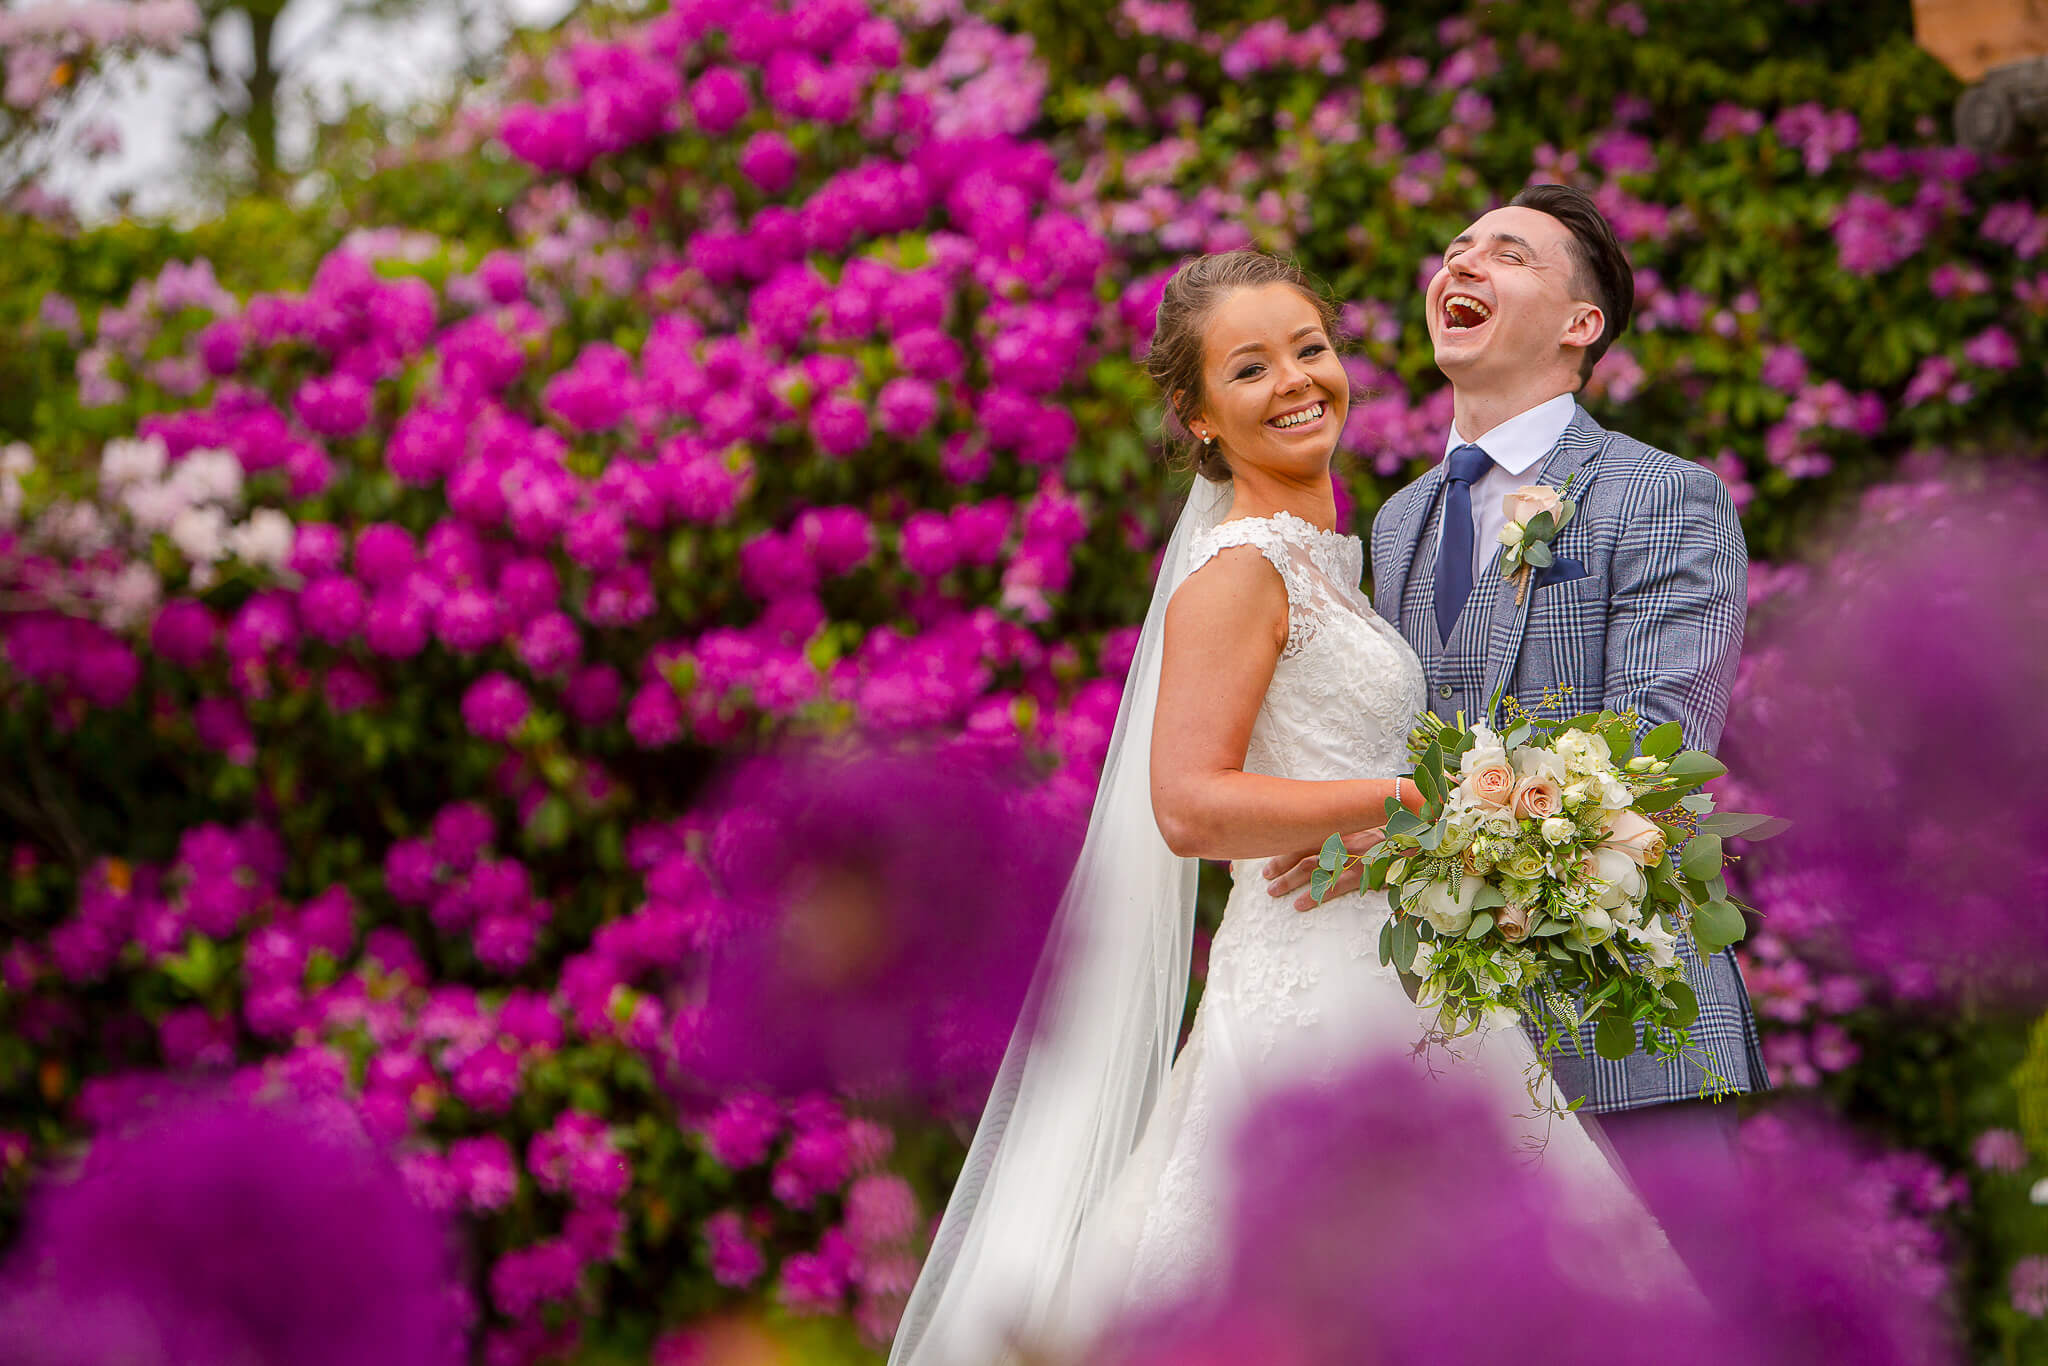 best-wedding-photographers-uk-europe-stanbury-photography-096